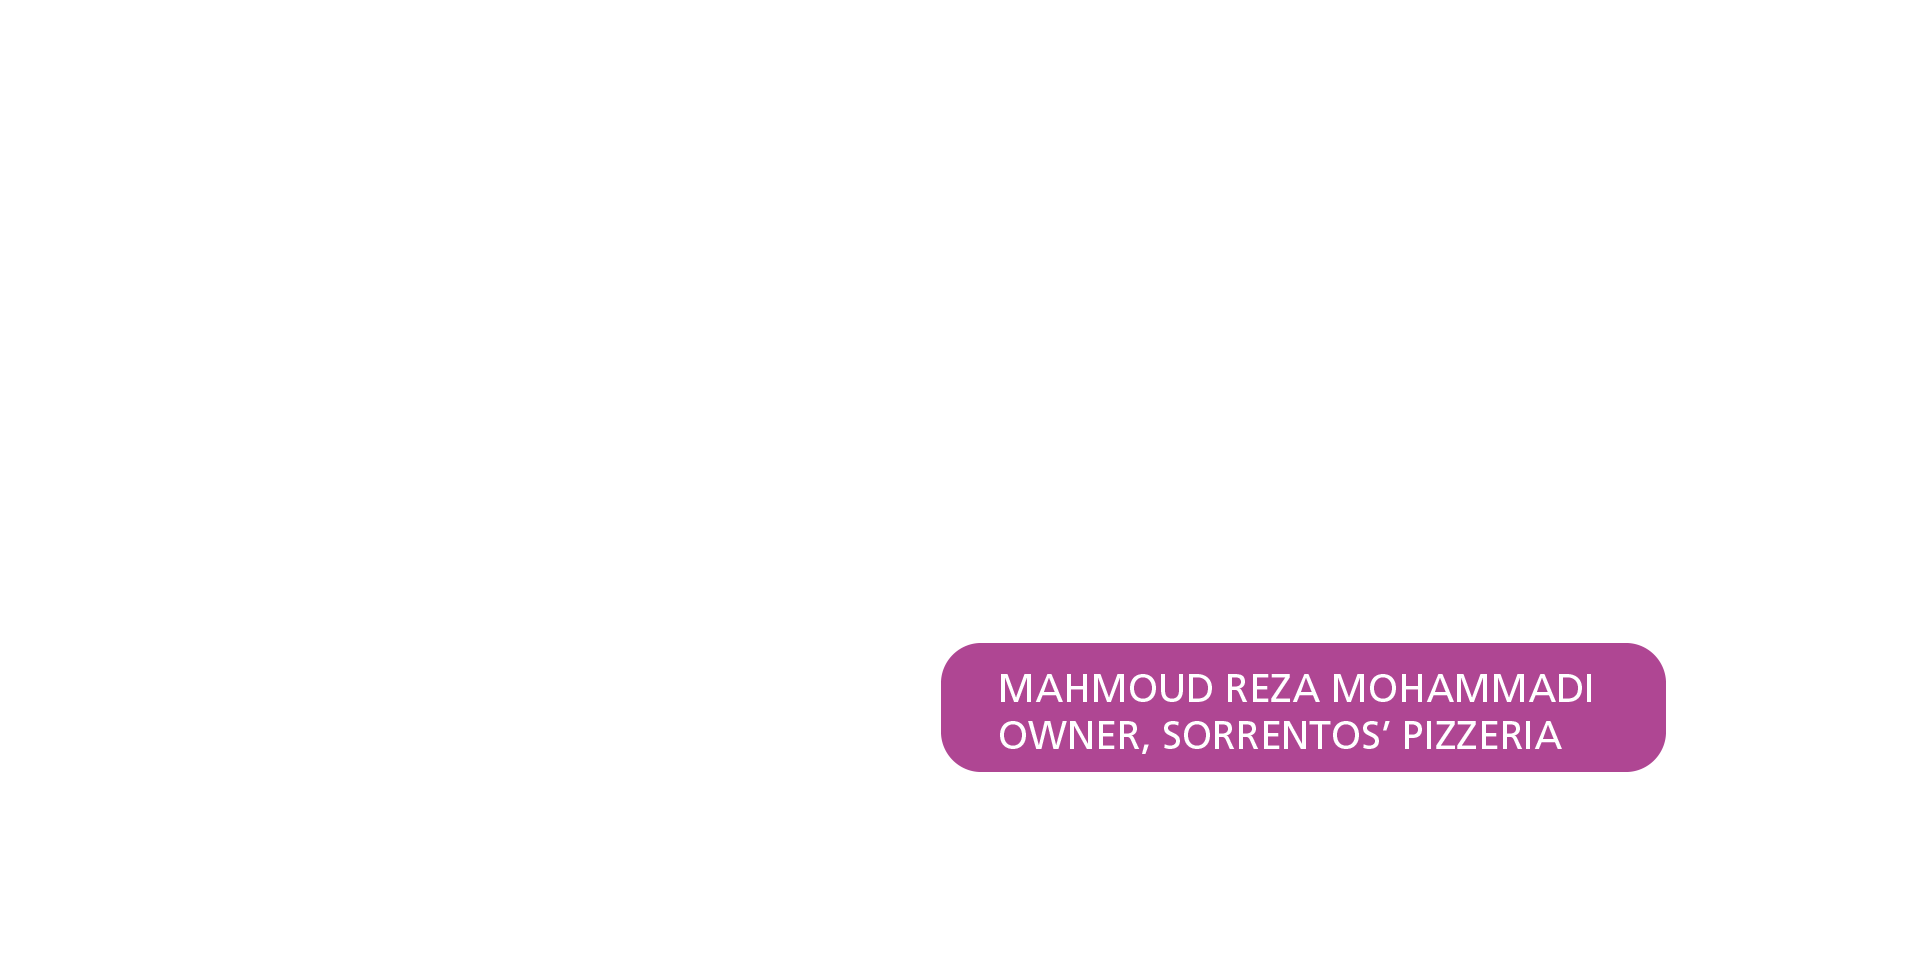 Purple box with text saying